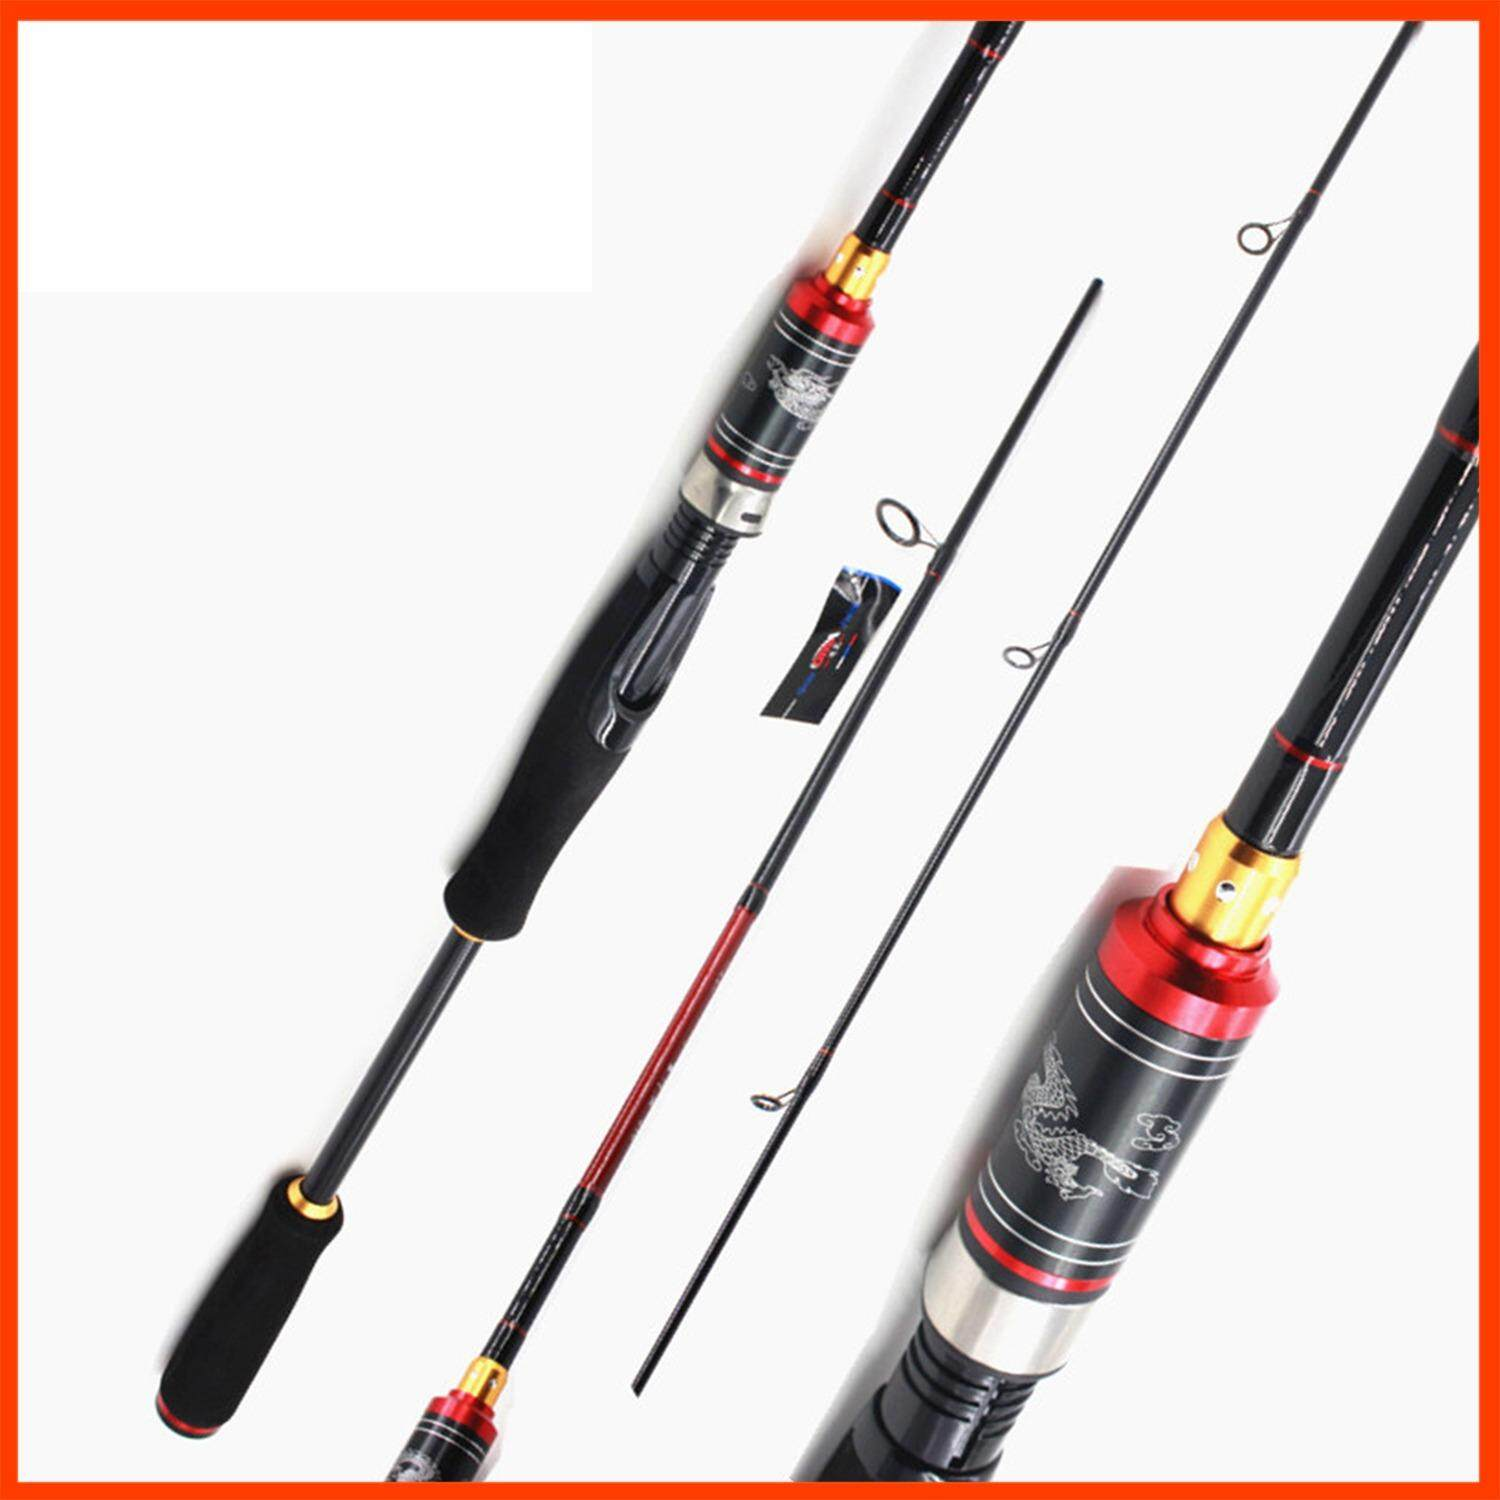 Buy Straight Handle 2 1M Ultralight Carbon Spinning Casting Lure Fishing Rod High Performance Spinning Travel Pole Sea Fishing Pole Sea Rivers And Lakes Pond Reservoir Stream Fast Action Fishing Shook Rod Intl On China